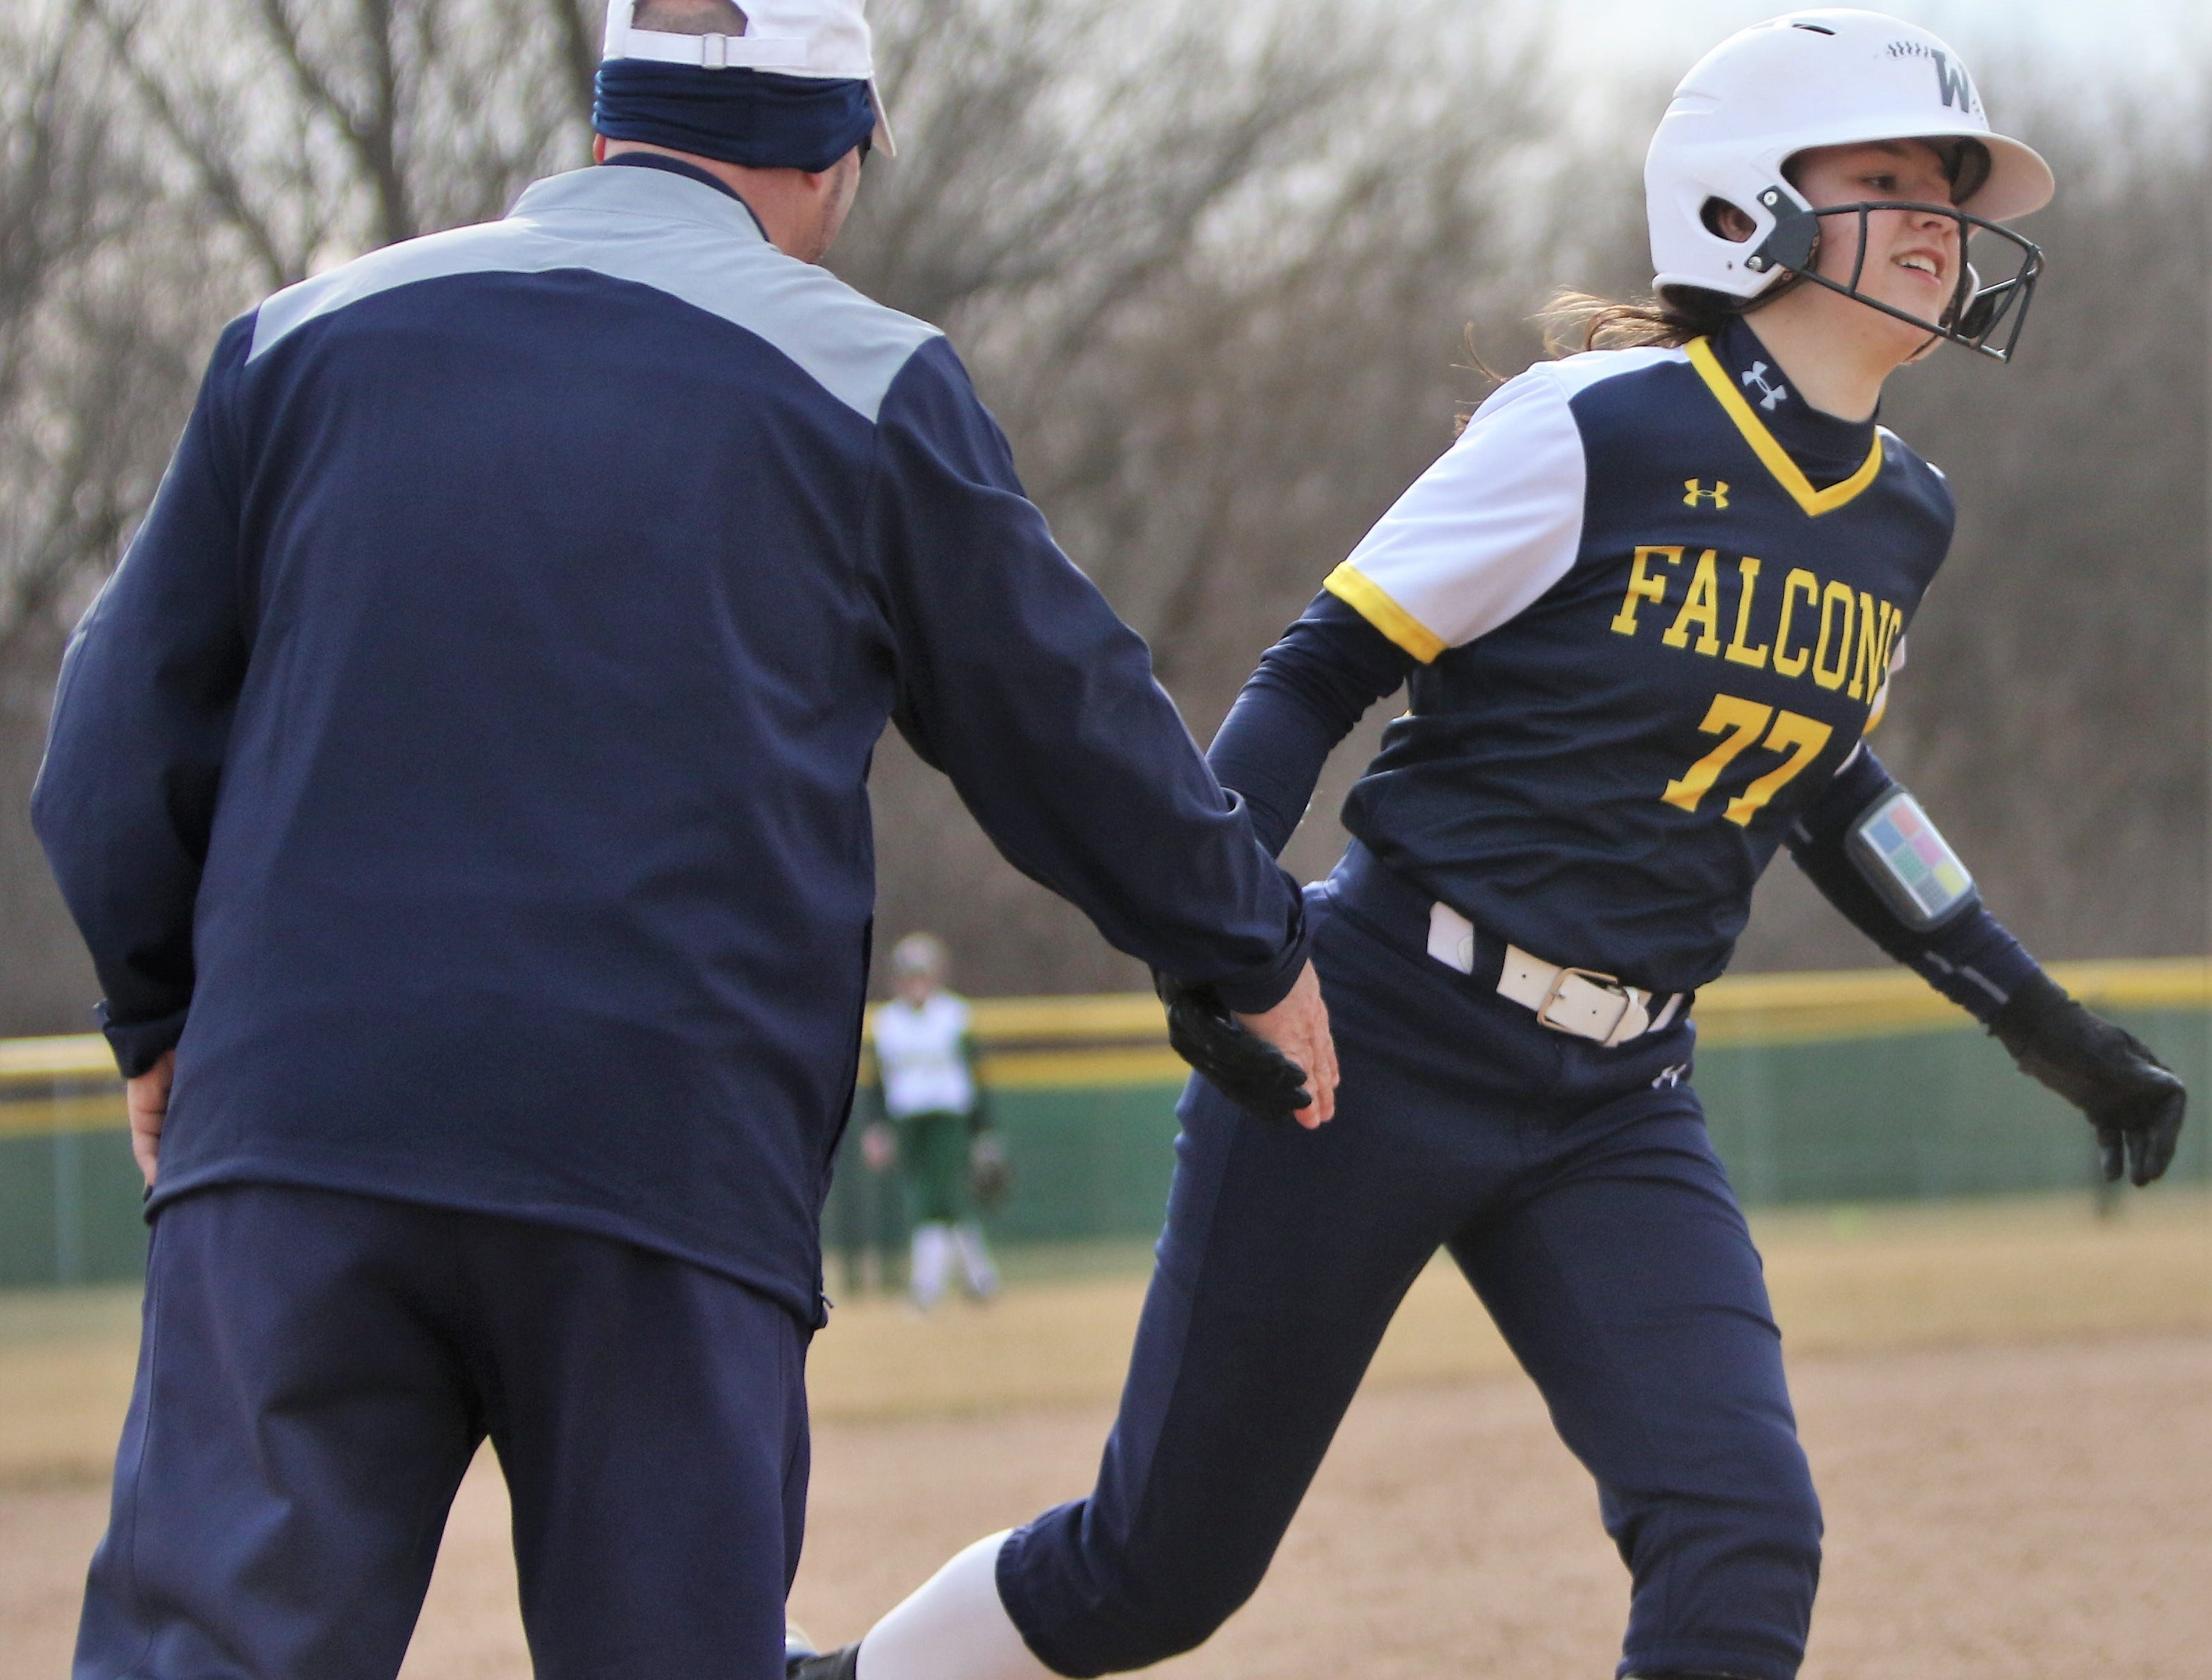 Whitnall sophomore Jesicca Vallier is congratulated by head coach John Quinlan after hitting a home run against Greenfield on April 3, 2019.